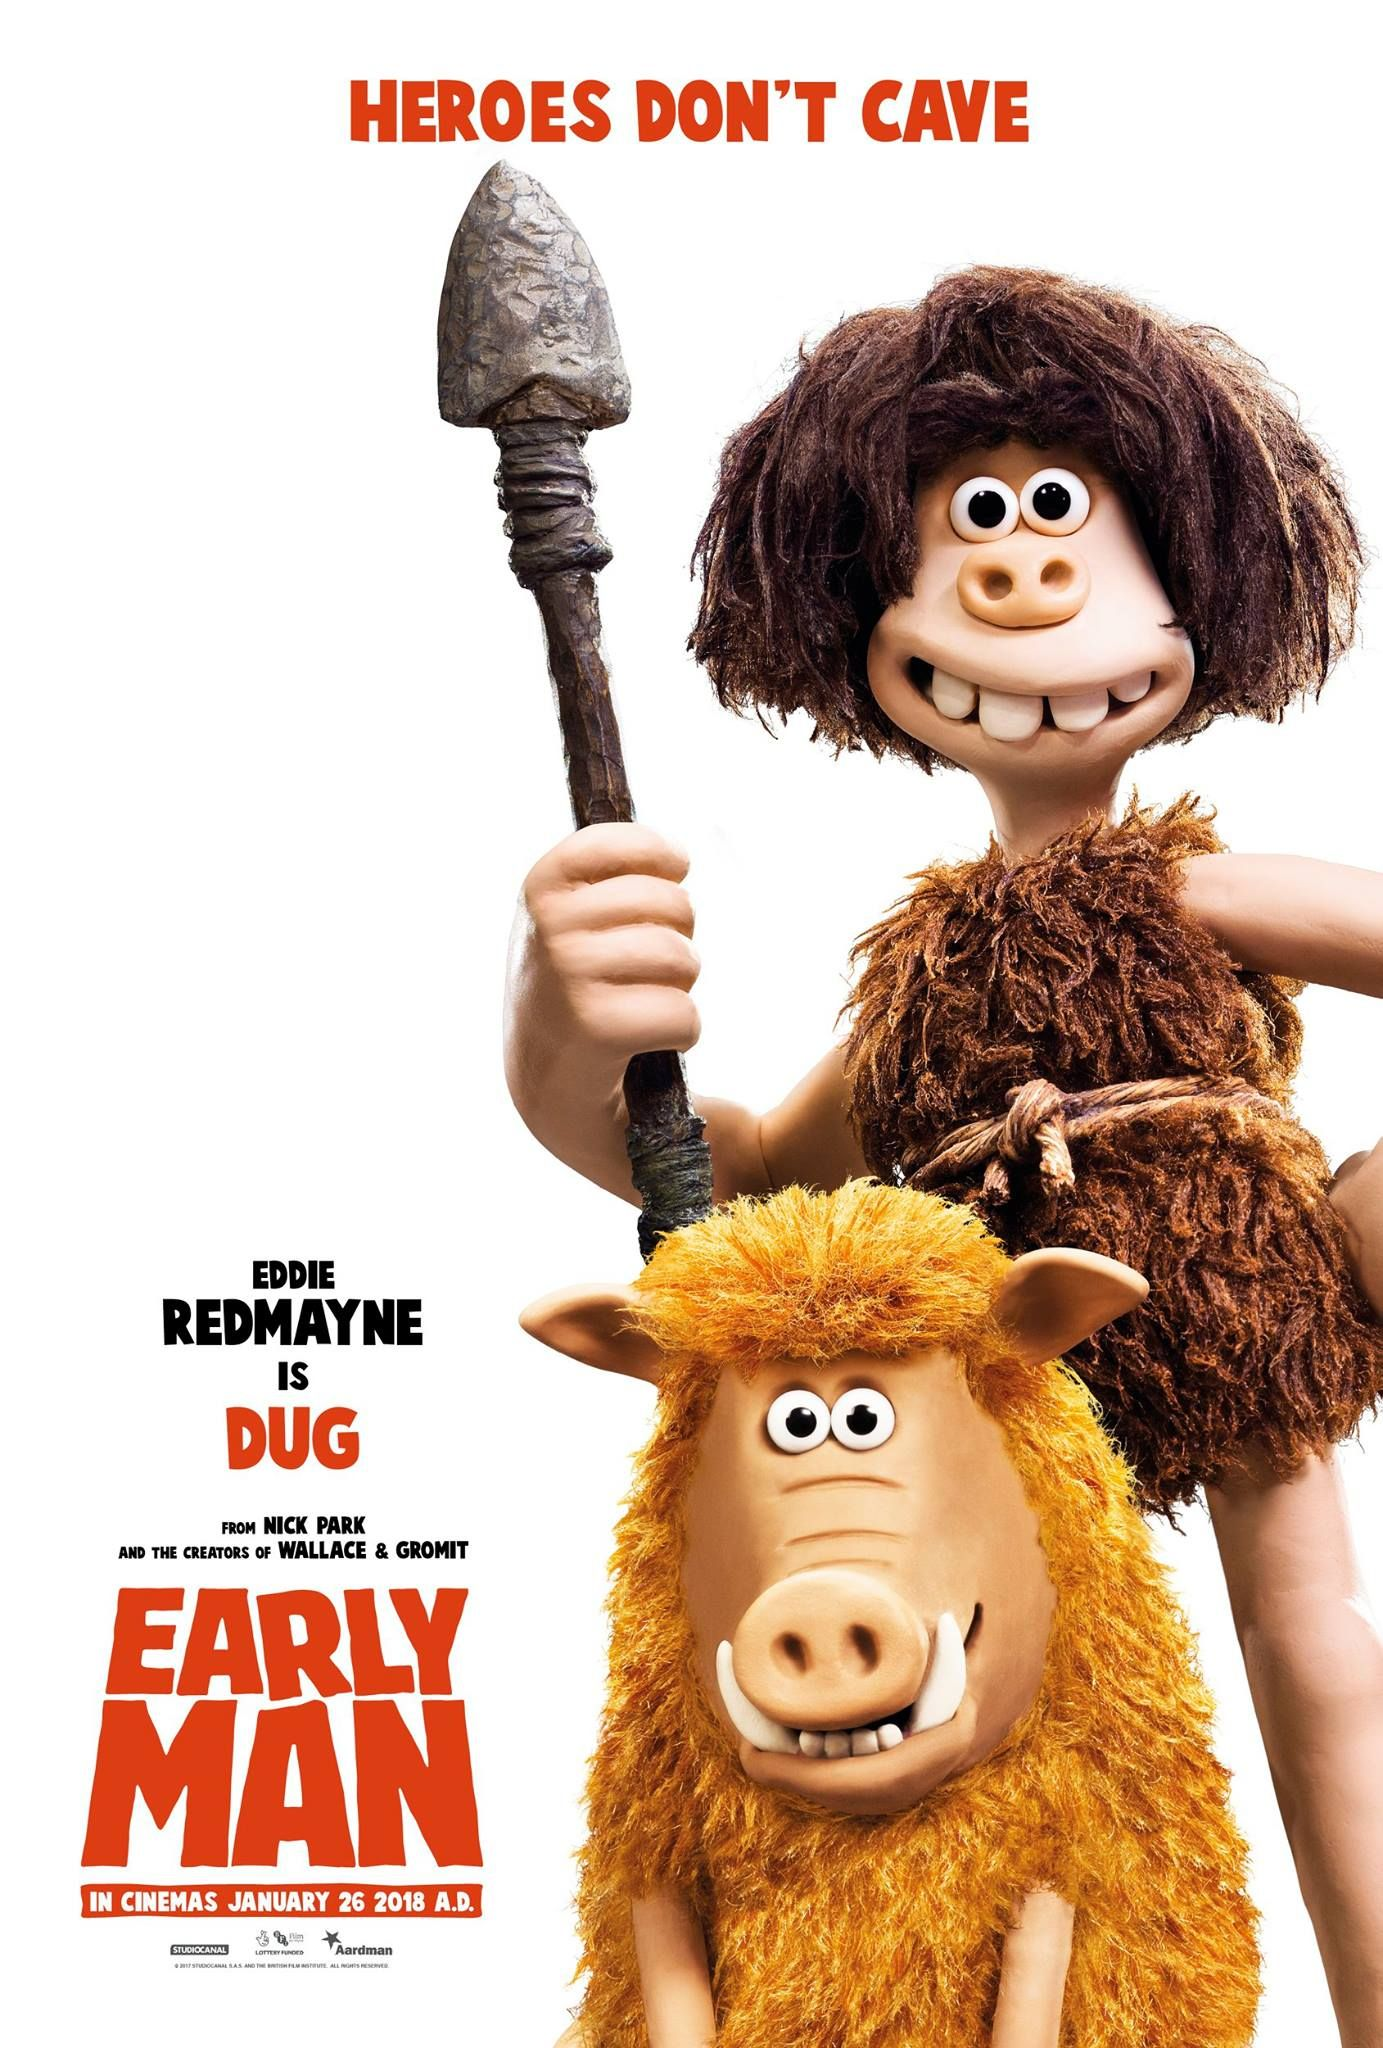 Early Man New Film Posters Https Teaser Trailer Com Movie Early Man Earlyman Earlymanmovie Movieposters Man Movies Aardman Animations Man